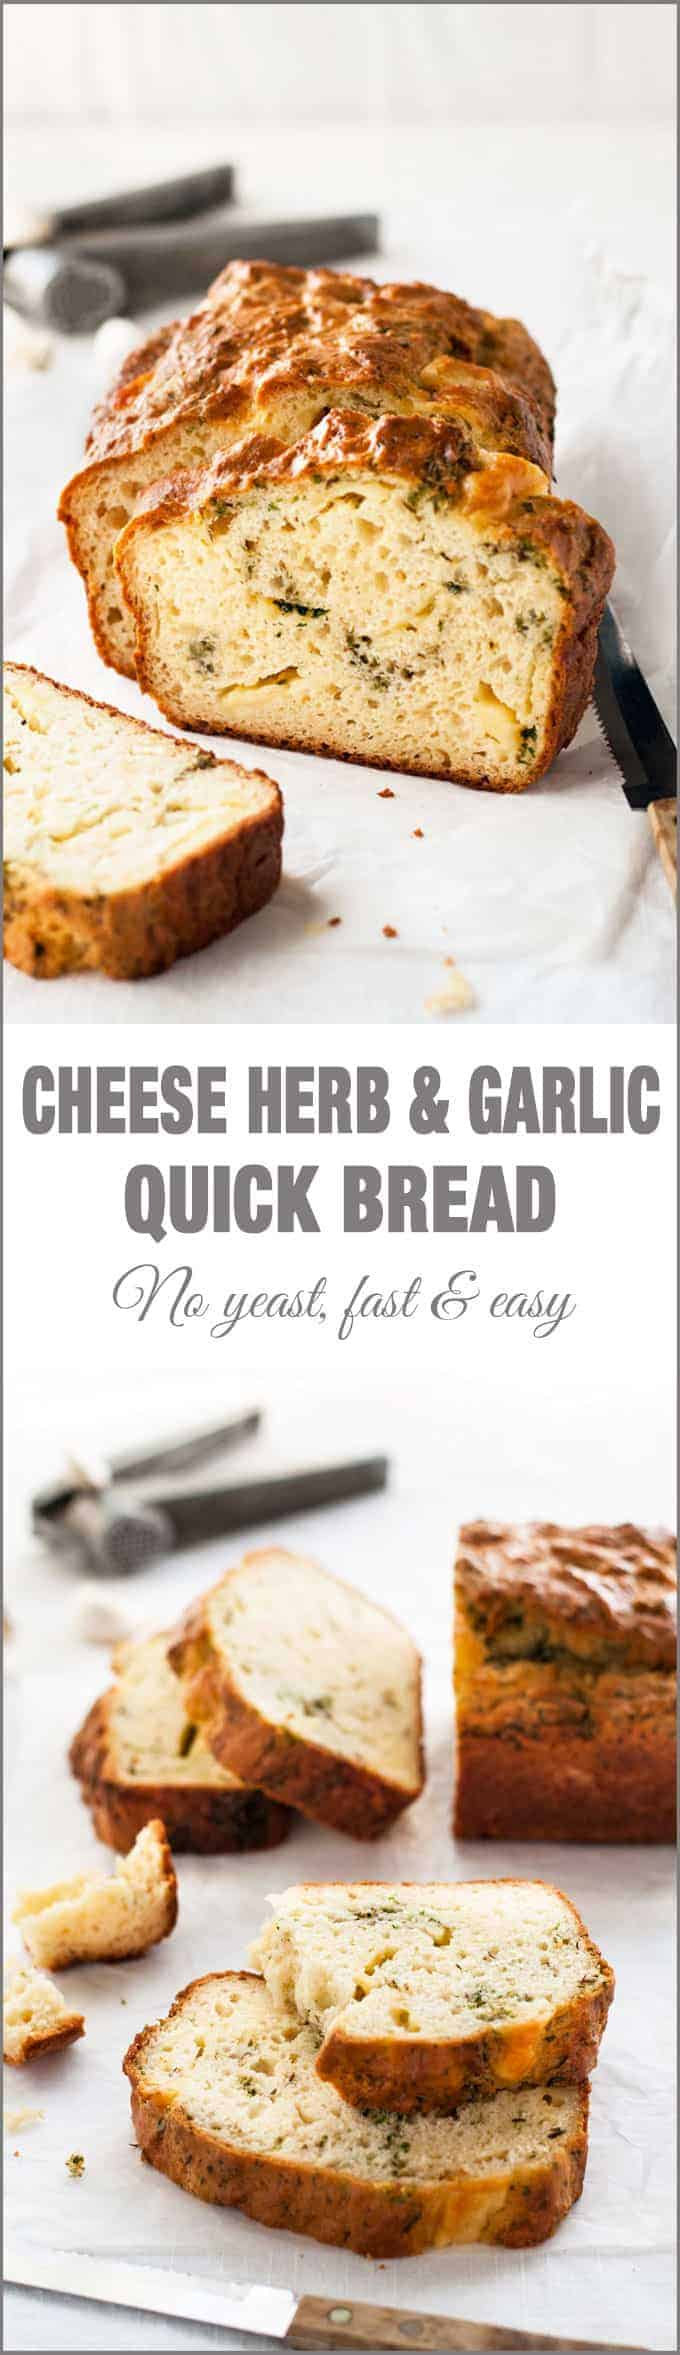 Cheese Herb and Garlic Quick Bread - true to its name, this is QUICK to prepare! Love the pockets of cheese and herb in this.